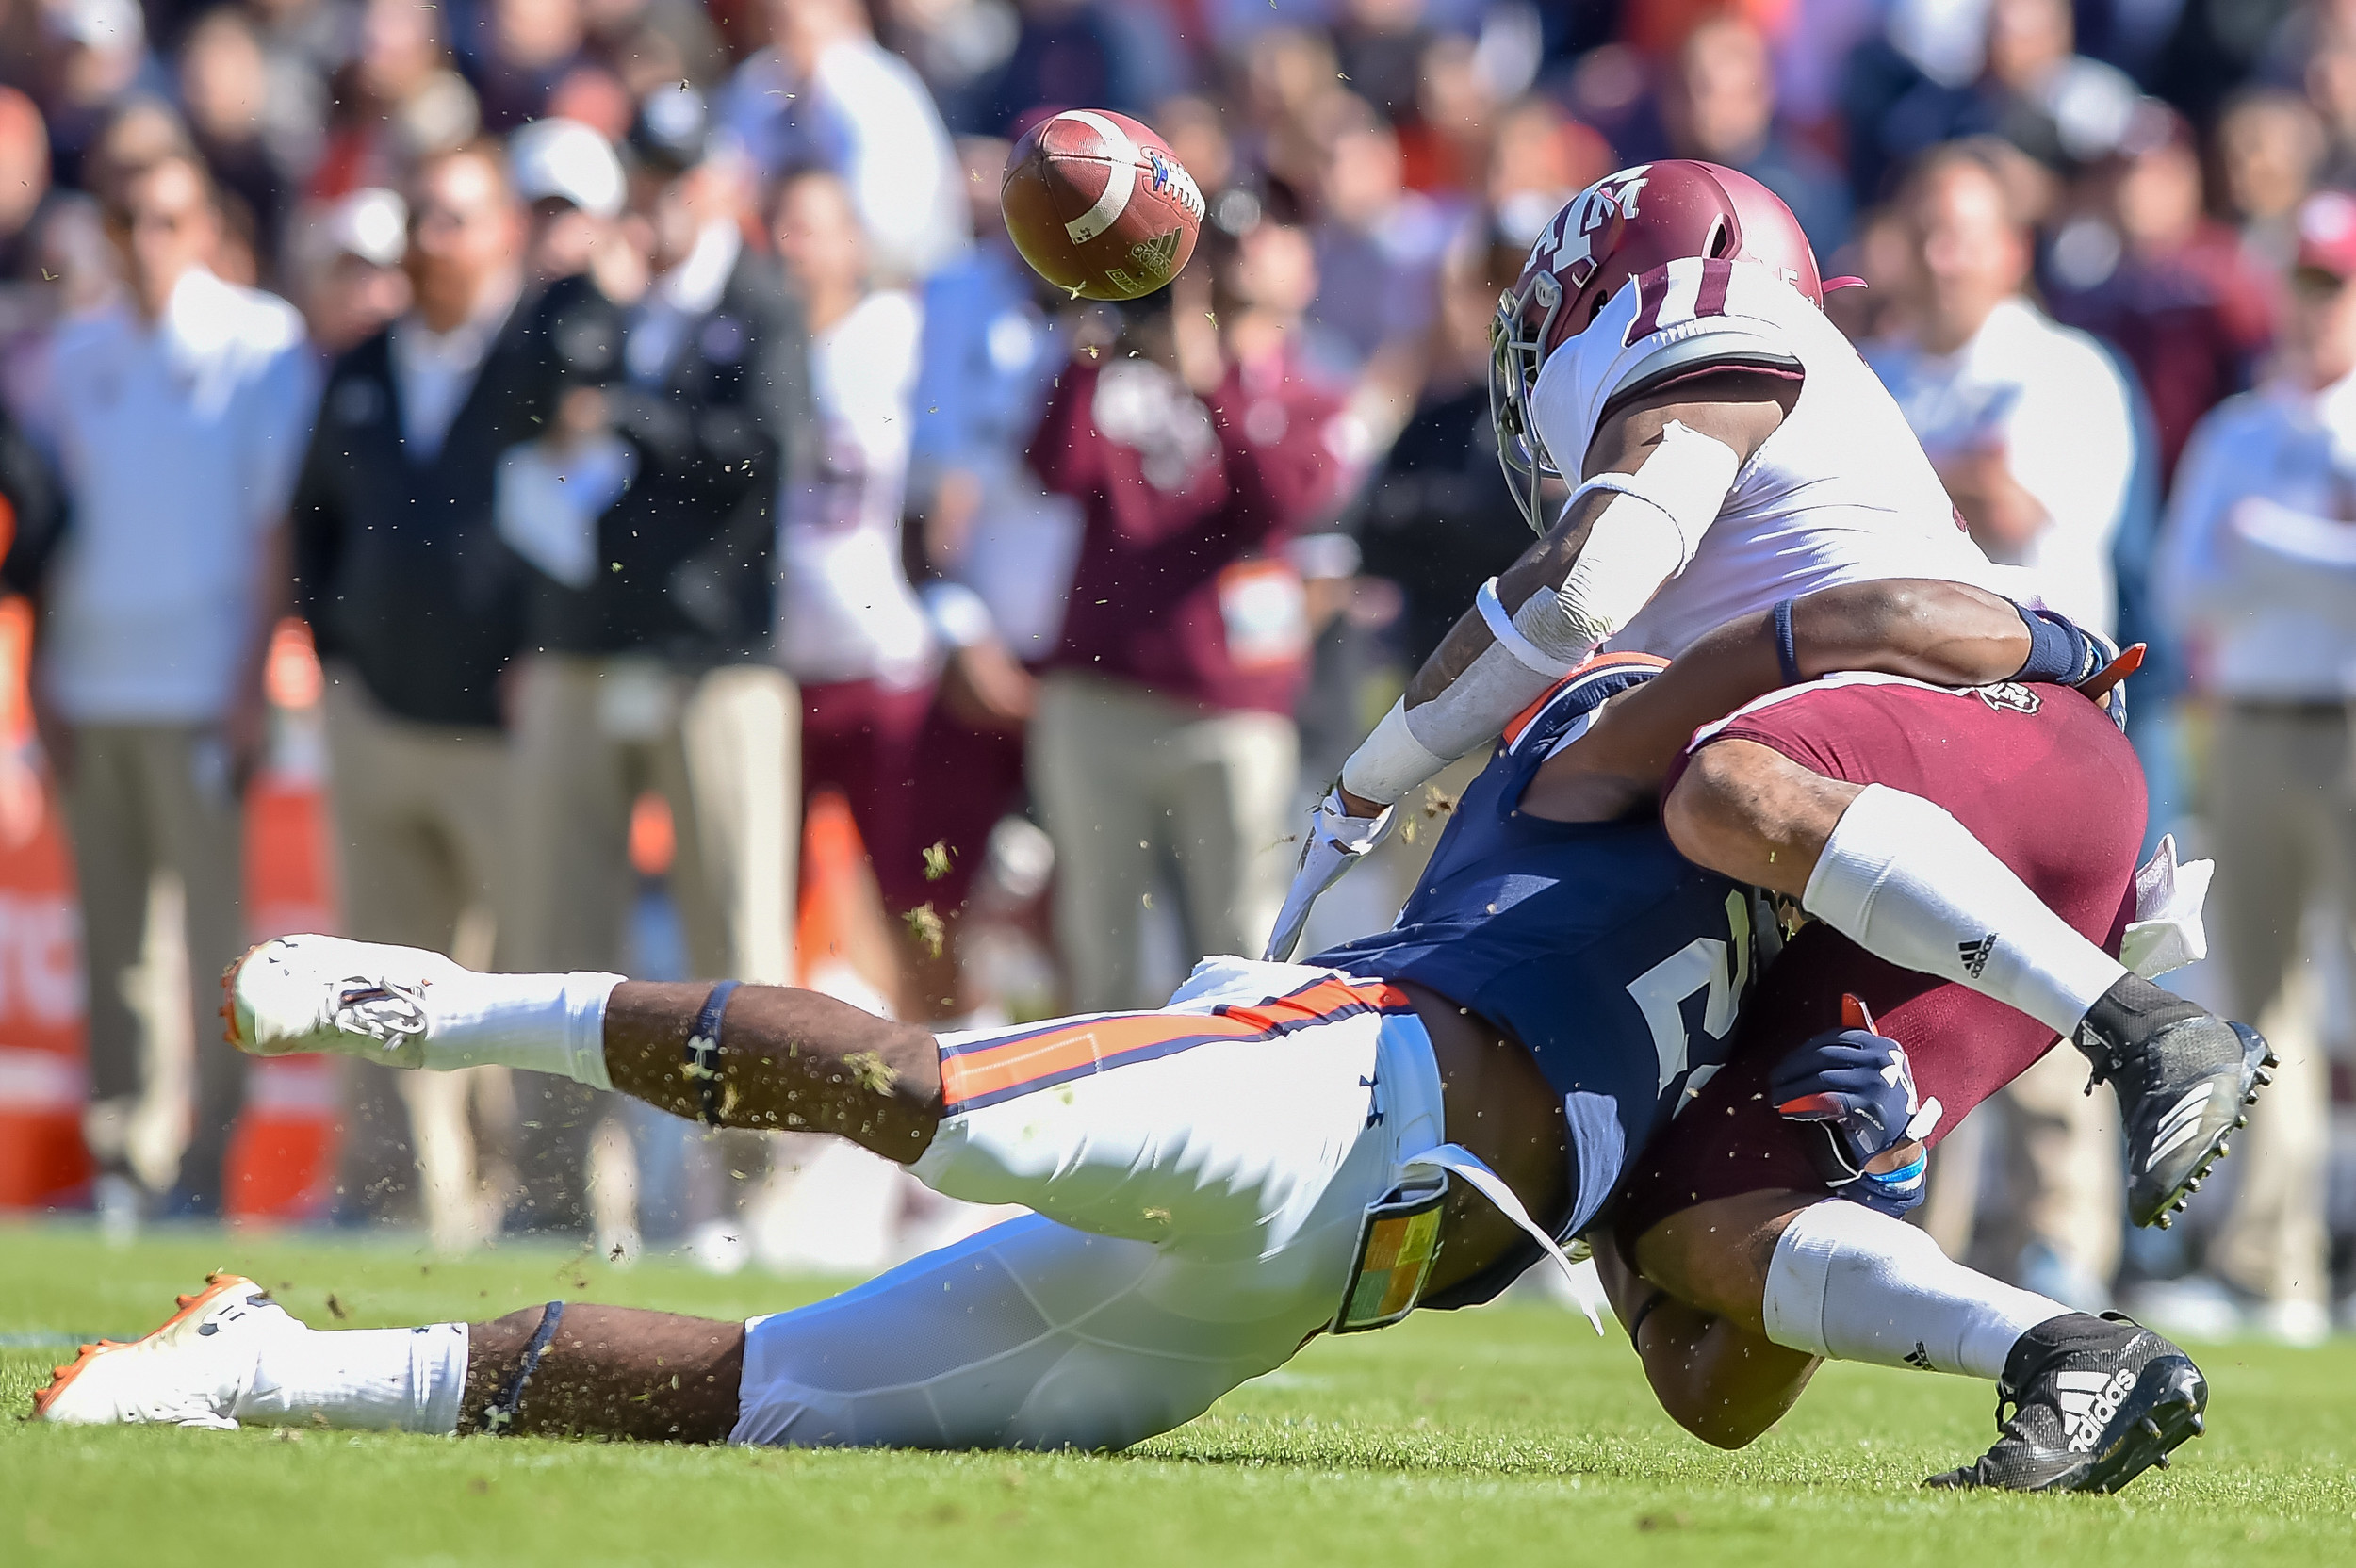 Auburn Tigers defensive back Daniel Thomas (24) causes a fumble by Texas A&M Aggies wide receiver Jhamon Ausbon (2) during the first half of an NCAA football game between the Auburn Tigers and Texas A&M Aggies Saturday, November 3, 2018, at Jordan-Hare Stadium in Auburn, Ala. (Photo by Jeff Johnsey)